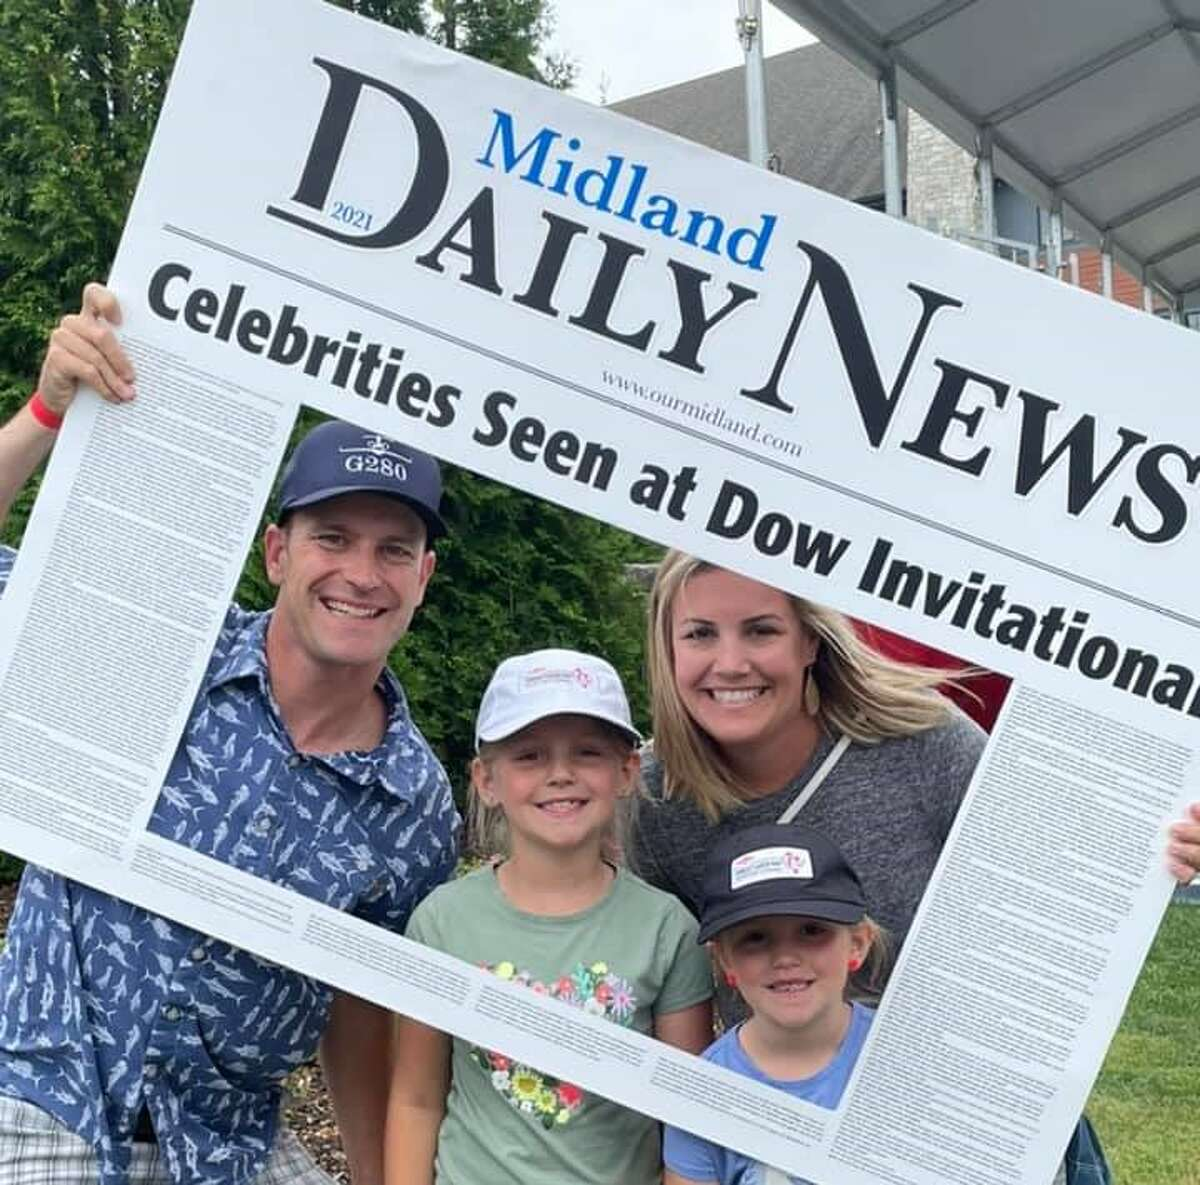 Attendees pose during a break from the LPGA action atthe 2021 Great Lakes Bay Invitational at the Midland Country Club.